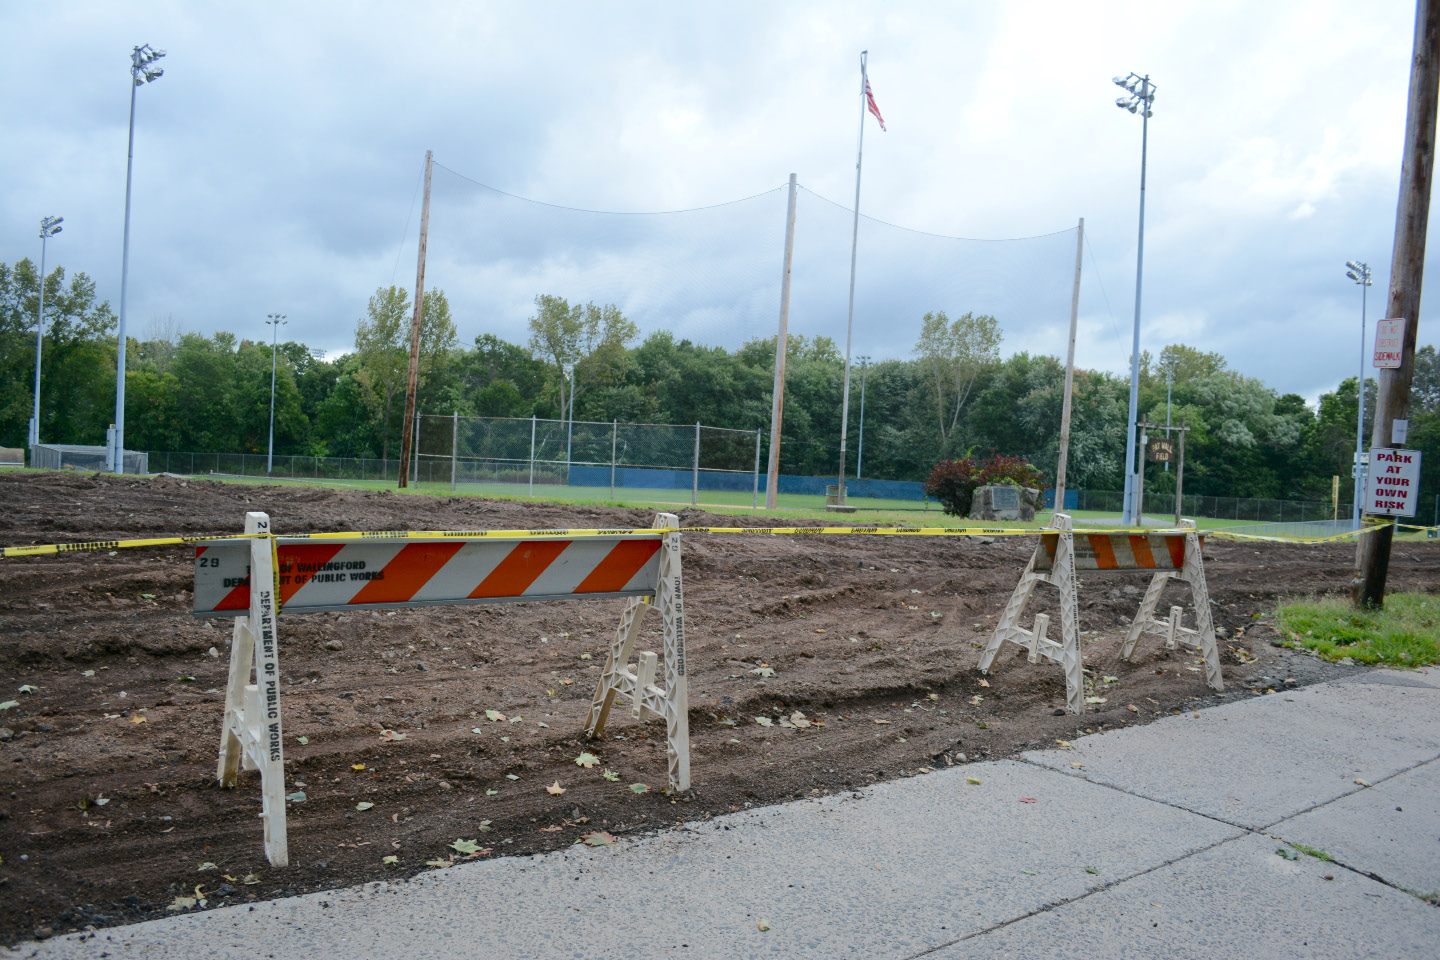 Construction on Pat Wall Field in Wallingford on Wednesday, Aug. 7. | Bryan Lipiner, Record-Journal